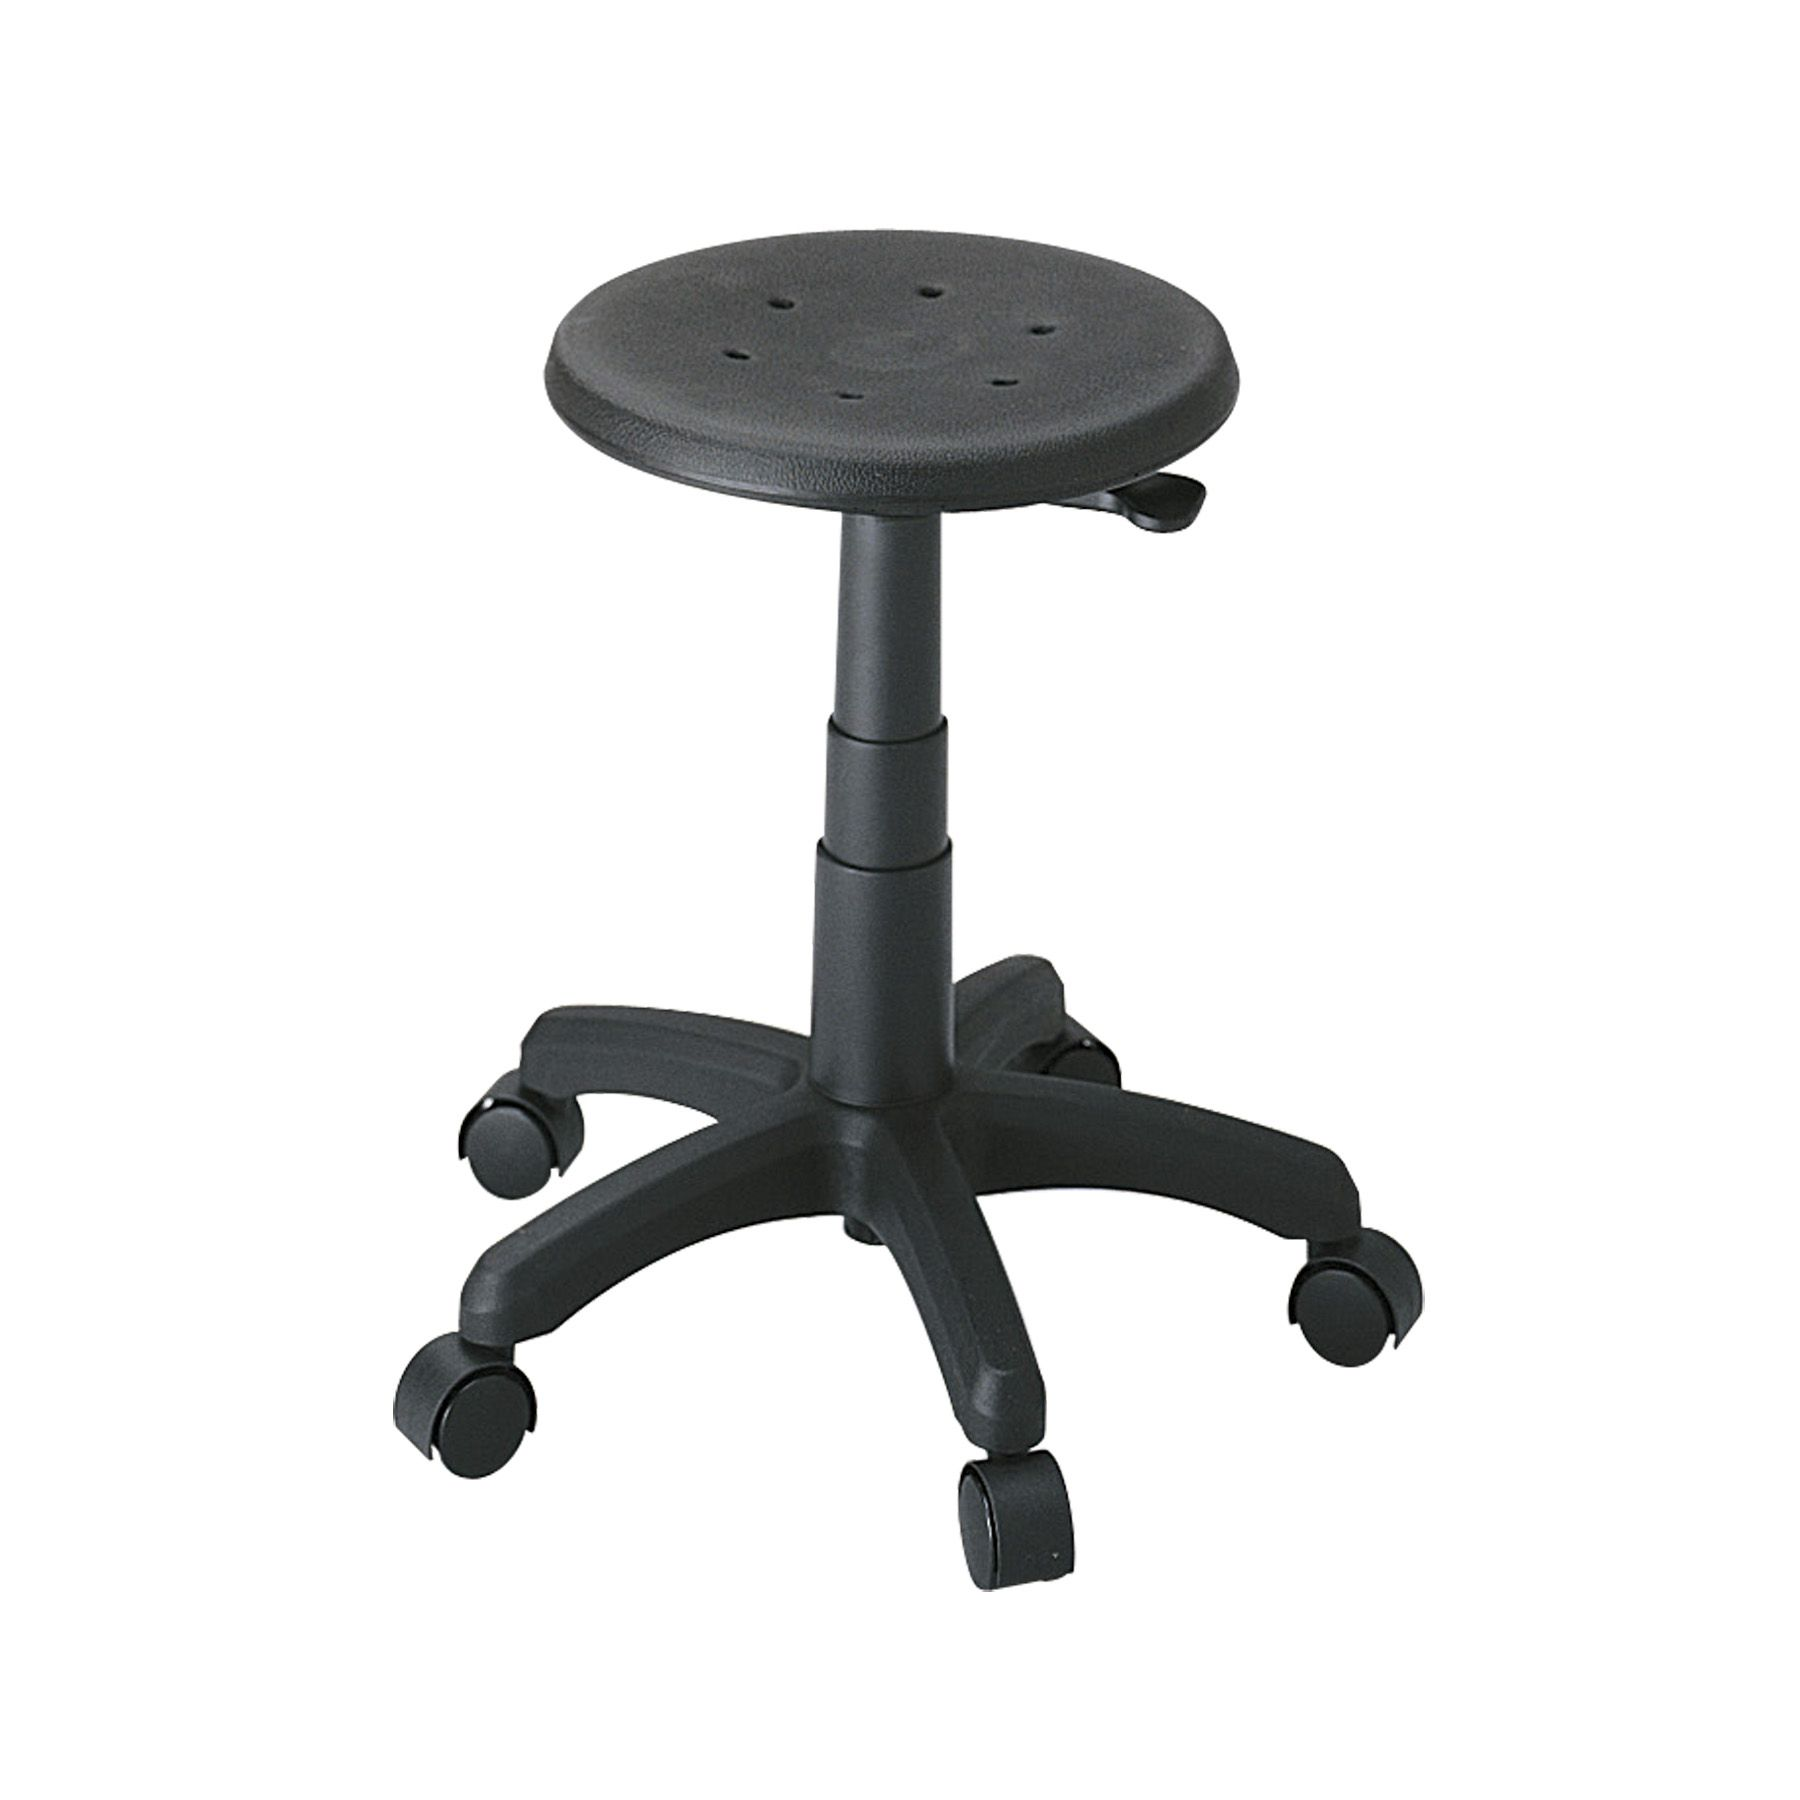 stylish ideas decoration remodel with stool wallpaper simple desk ergonomic stools home in about design